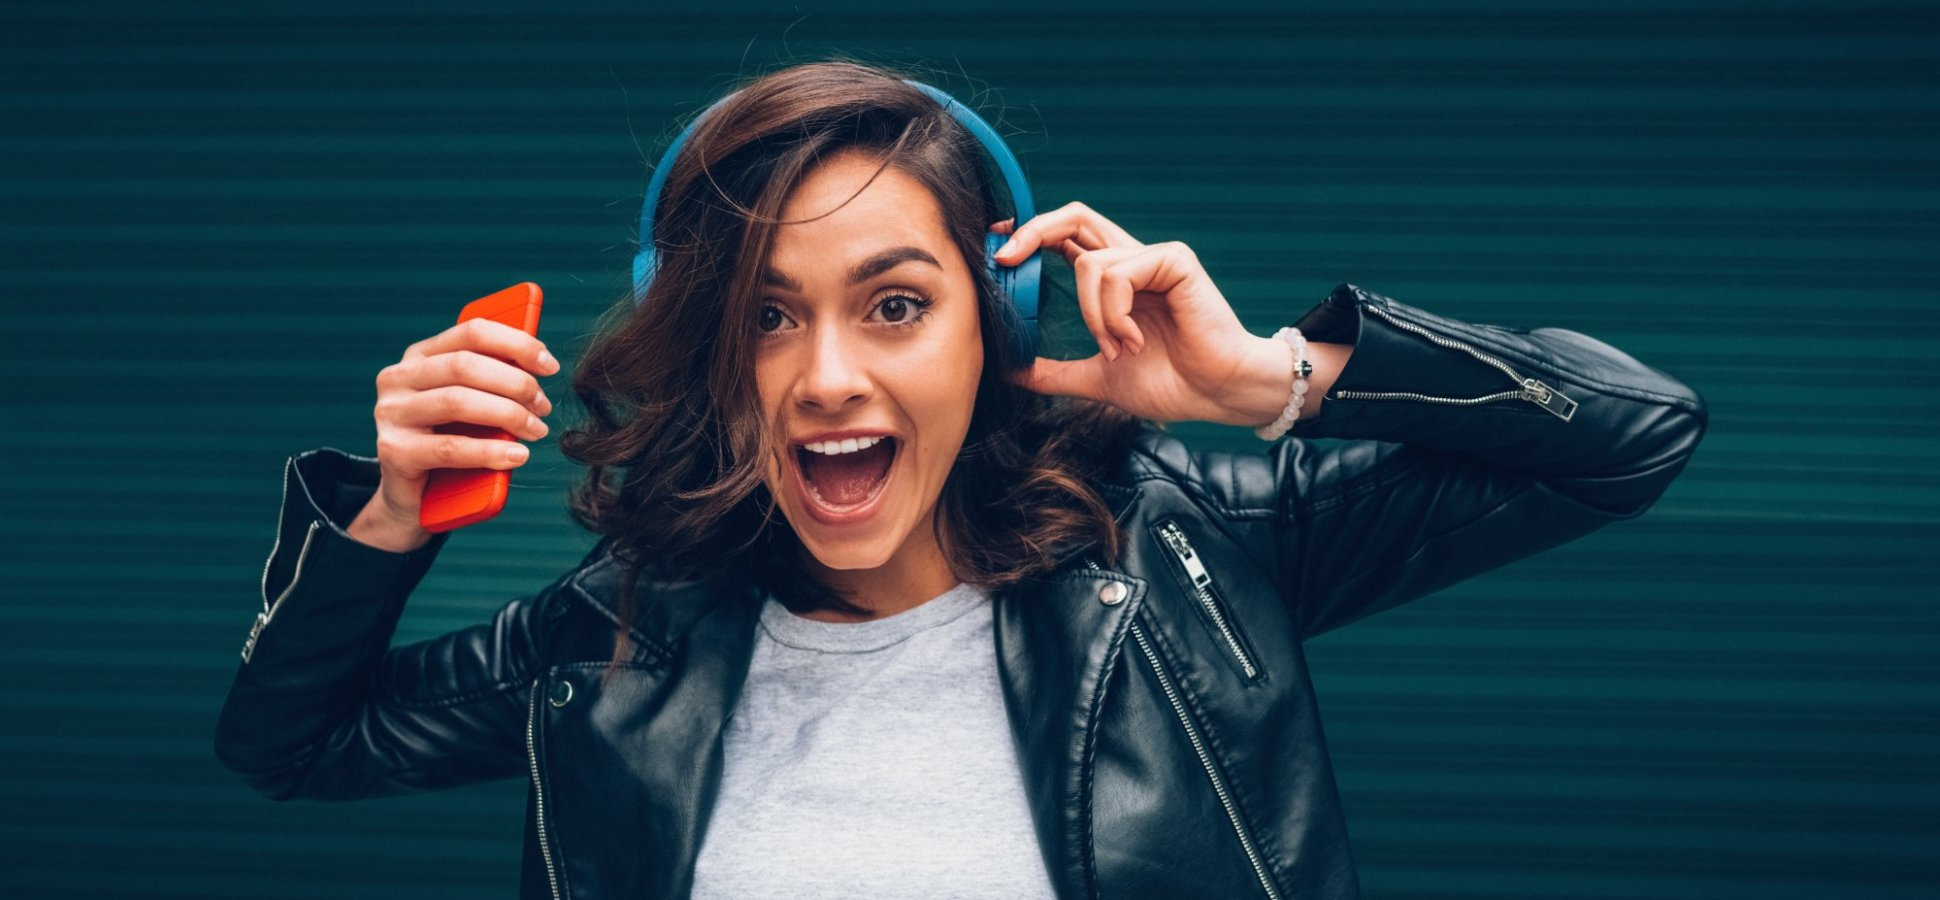 So, You Want to Get in On the Podcasting Boom. Here are 3 Things to Consider First.